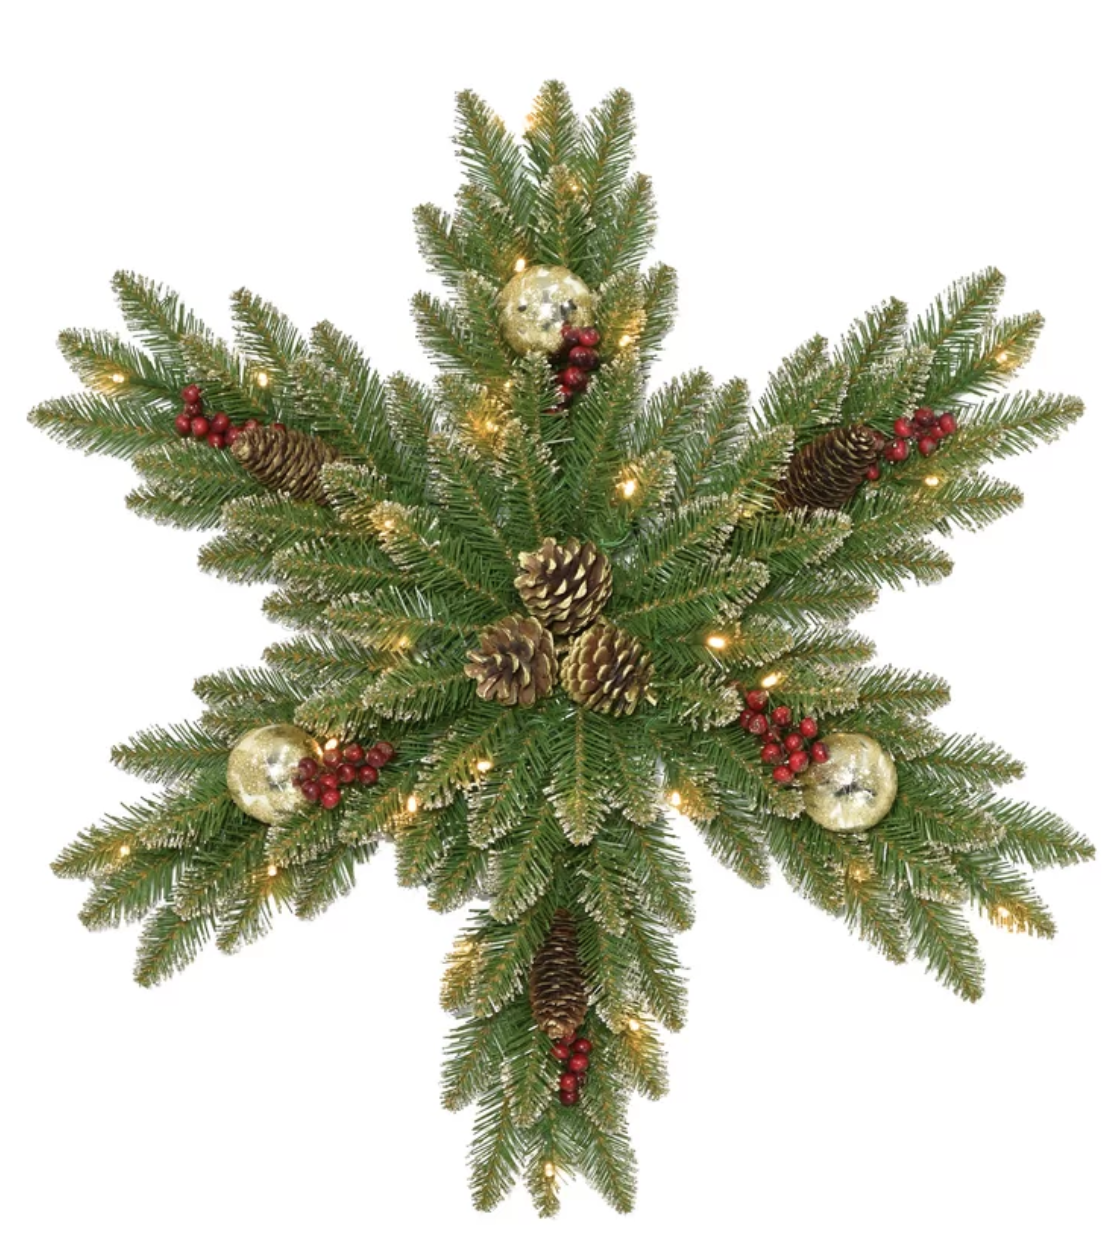 9 Christmas Front Door Decorations to Greet Your Holiday Guests Fir Snowflake Wreath #Christmas #ChristmasDecor #ChristmasSnowflake #ChristmasGatherings #FamilyGatherings #FrontDoorDecor #PorchDecor